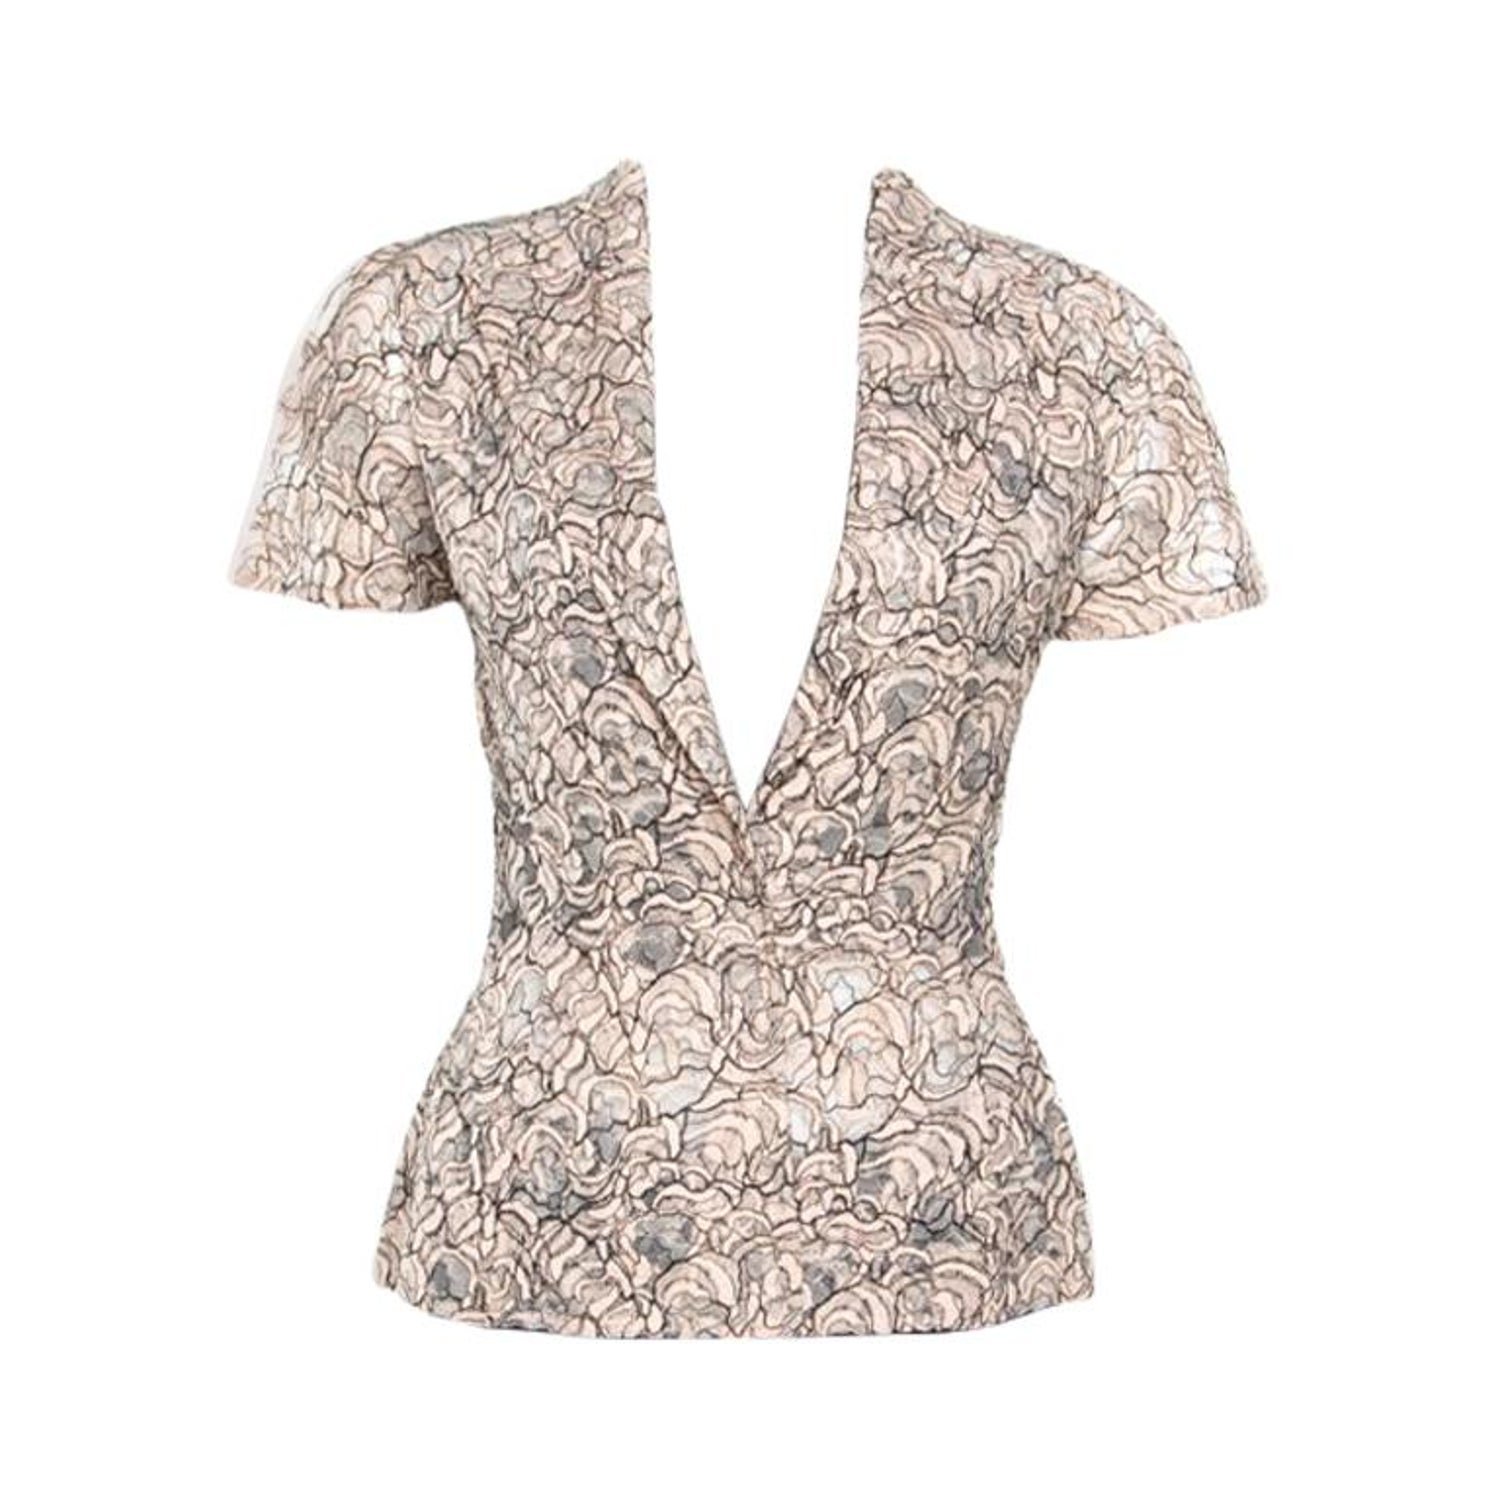 e5928d2c67040 Christian Dior Rose Pink Floral Lace Peplum Blazer M For Sale at 1stdibs